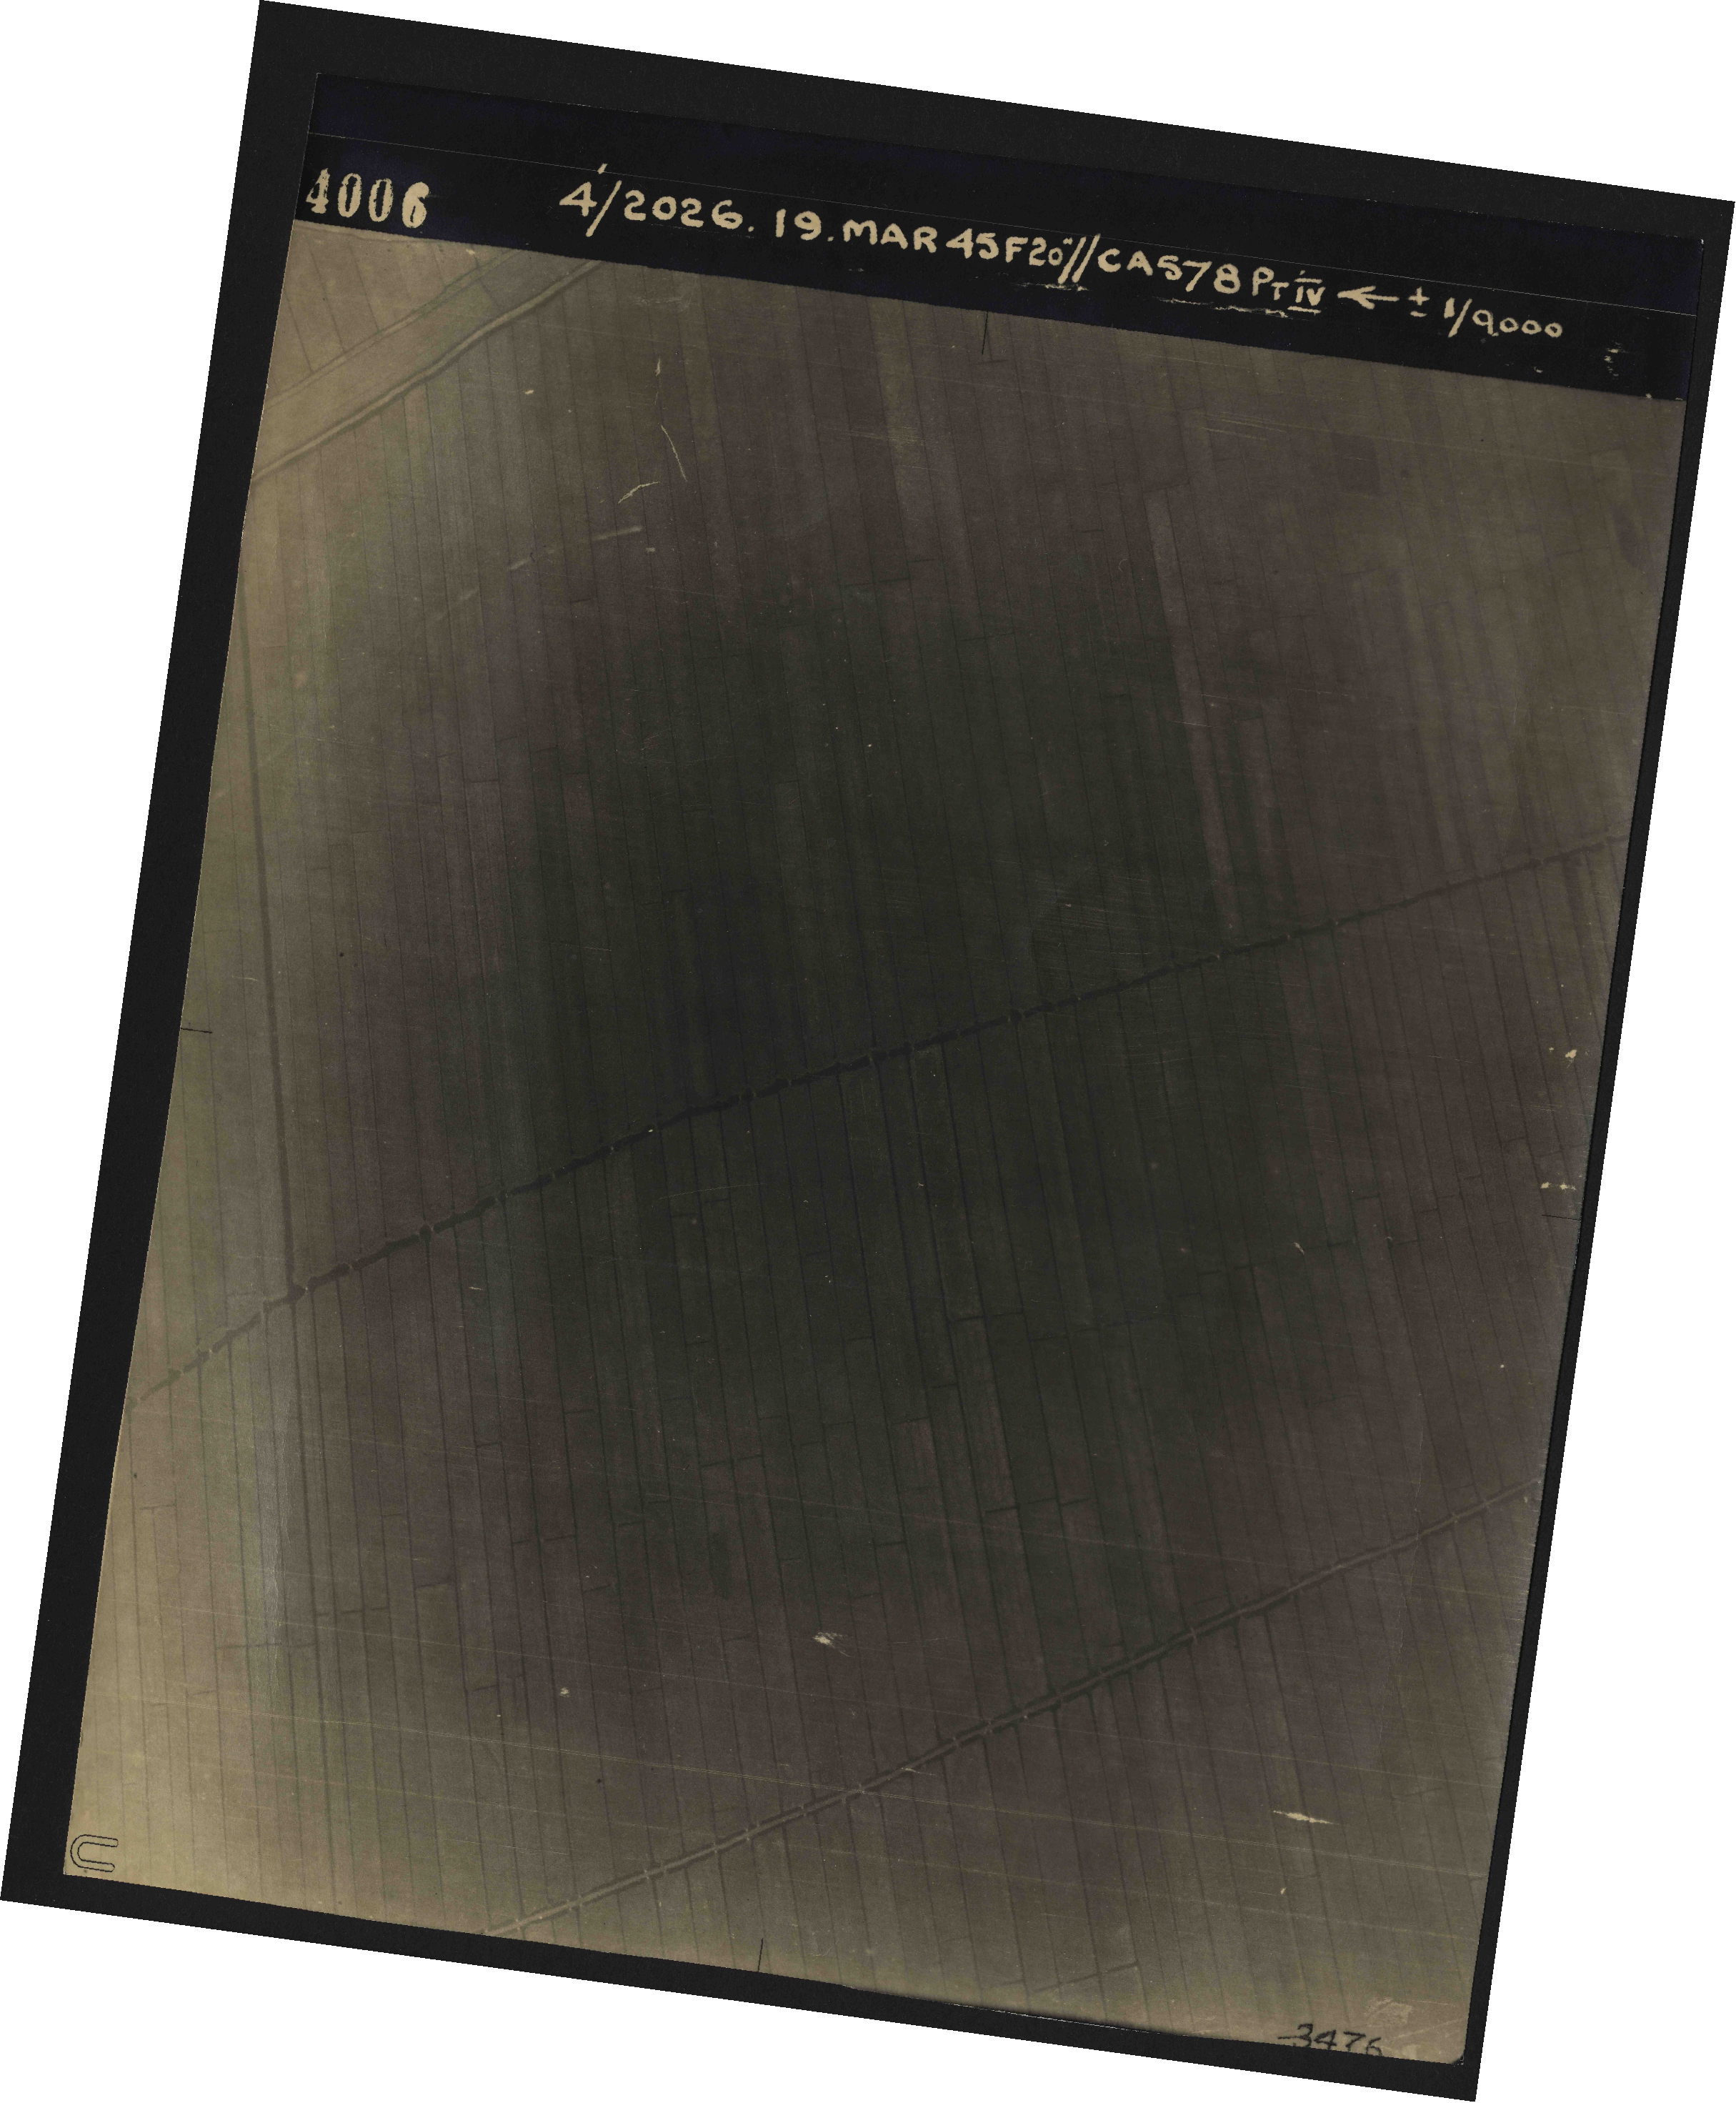 Collection RAF aerial photos 1940-1945 - flight 012, run 02, photo 4006